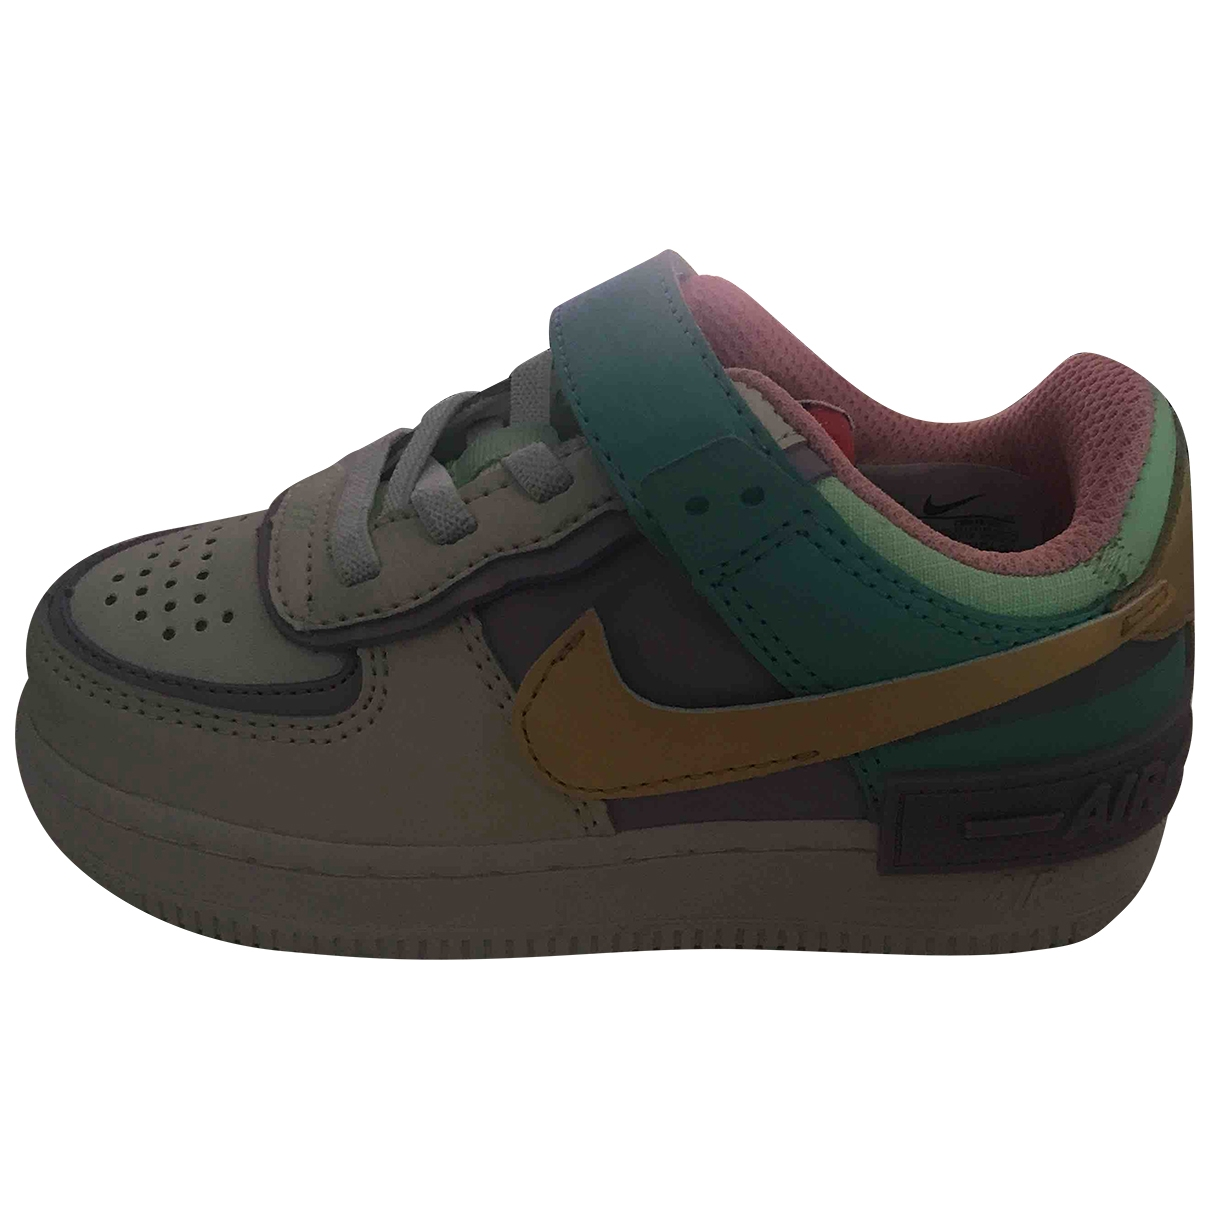 Nike Air Force 1 Multicolour Leather Trainers for Kids 26 EU